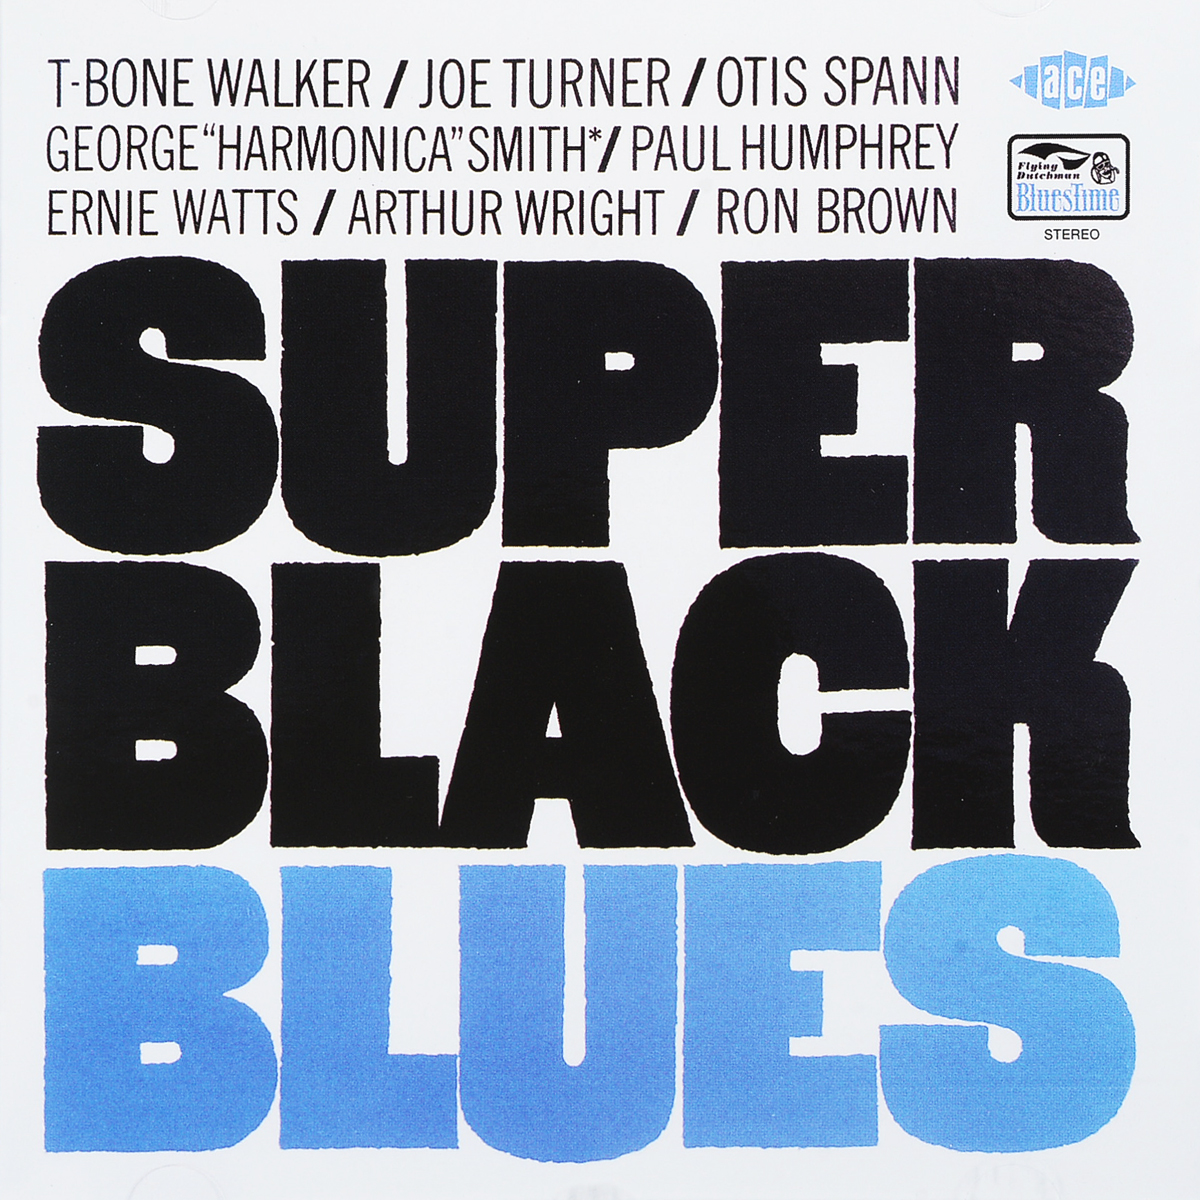 T-Bone Walker/Joe Turner/Otis Spann. Super Black Blues